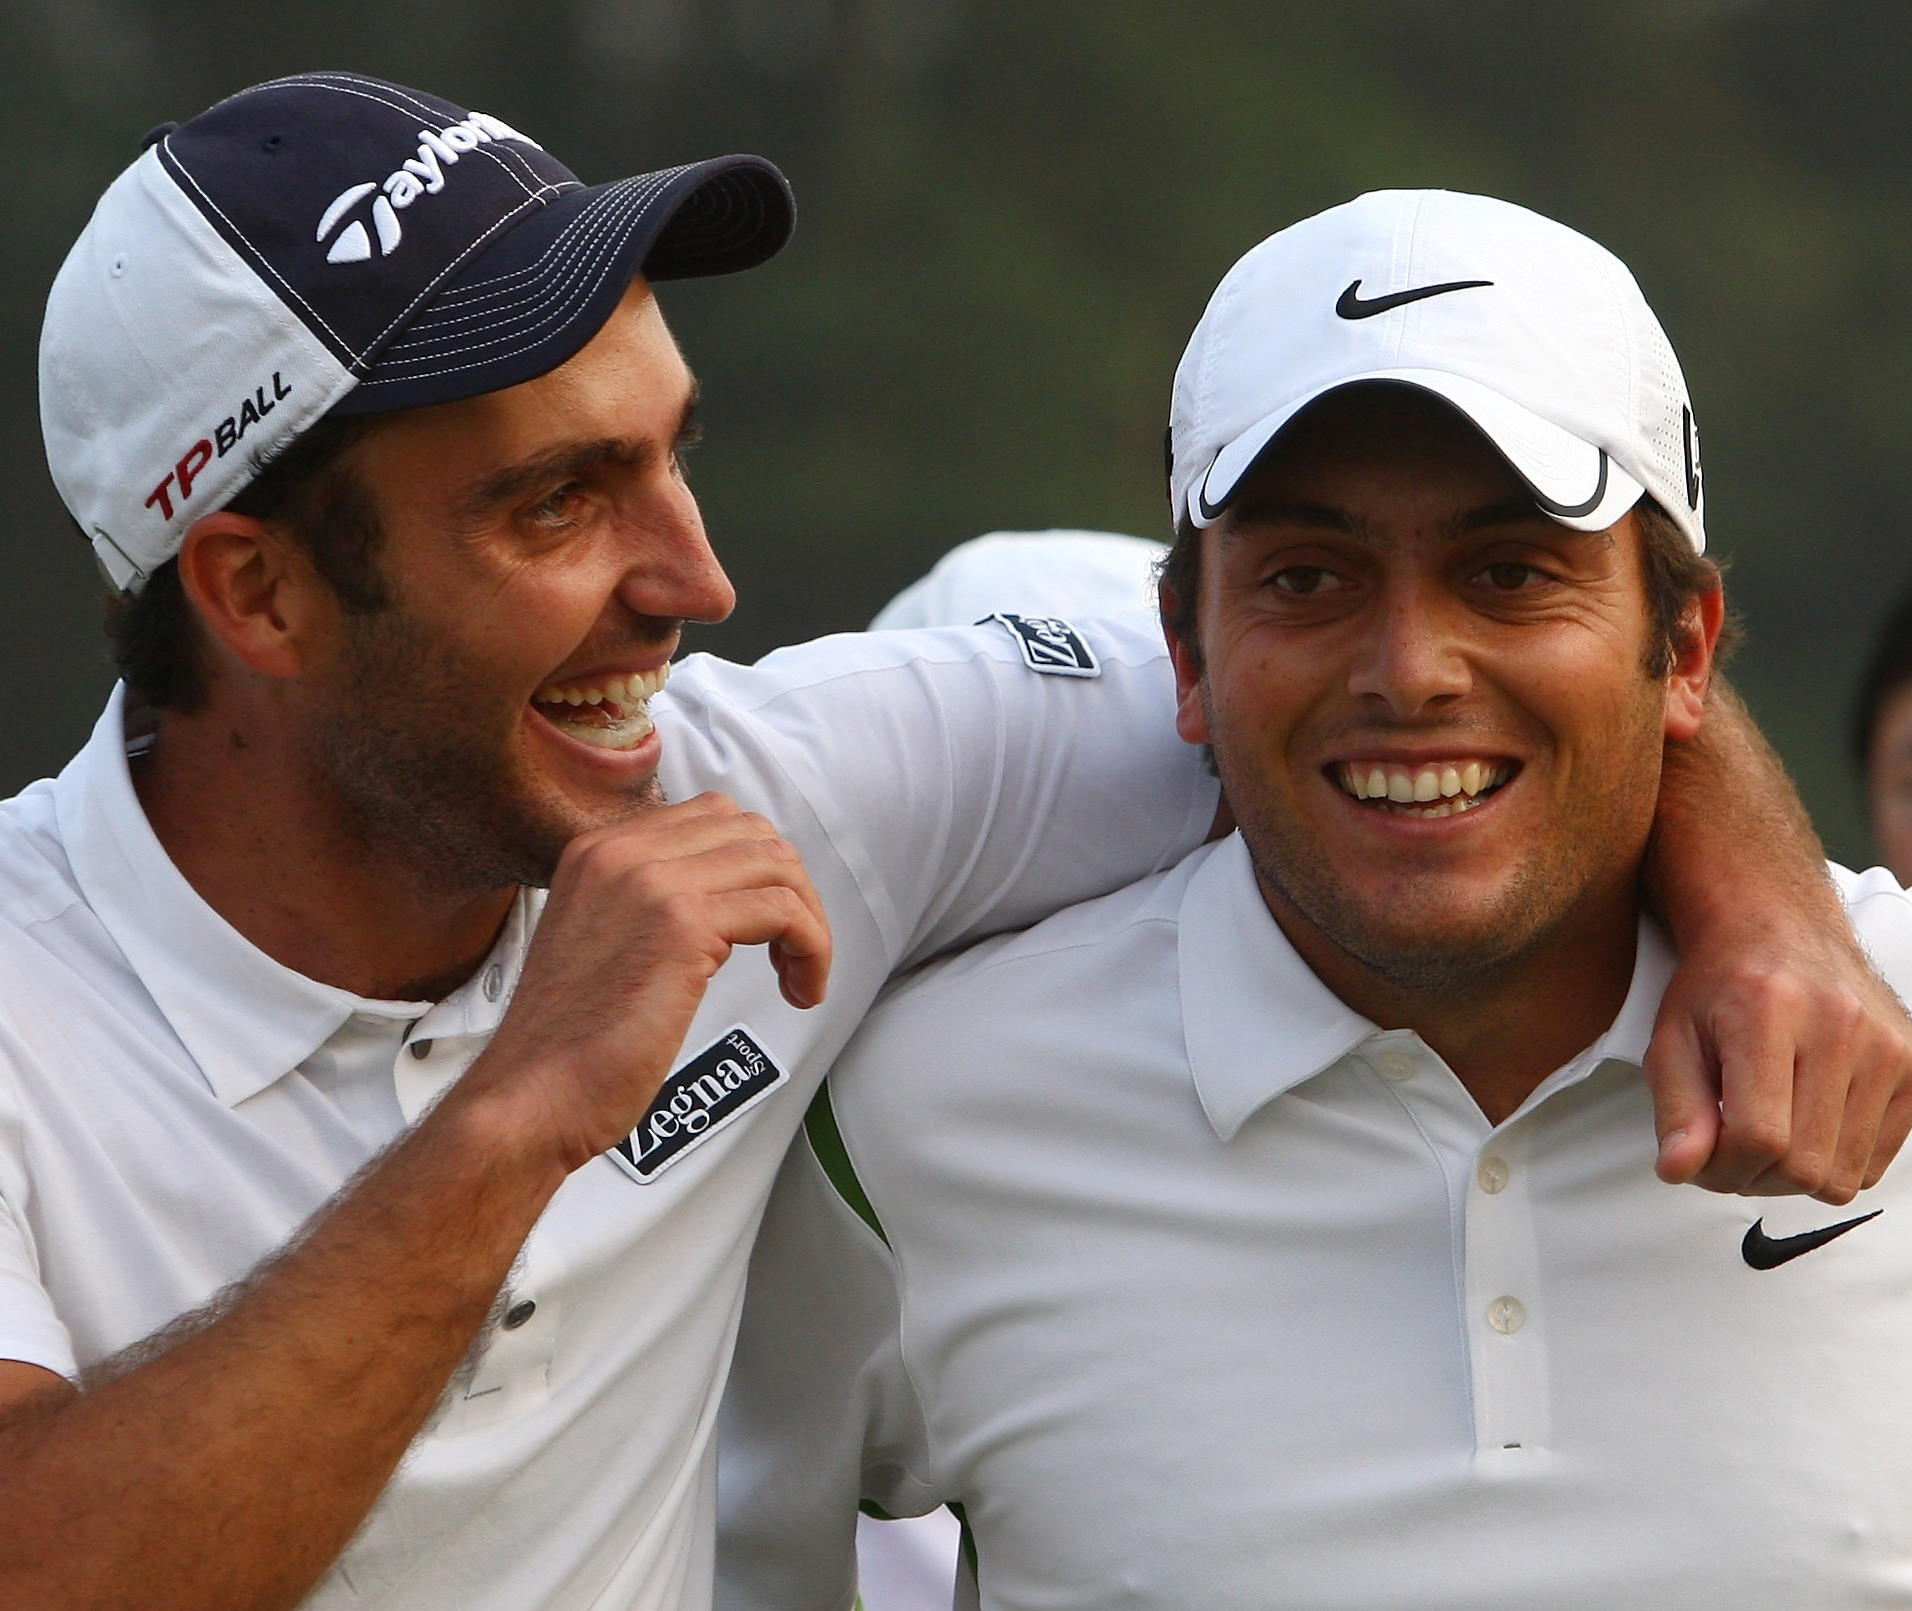 Brotherly love: Edoardo and Francesco Molinari defend the title for Italy